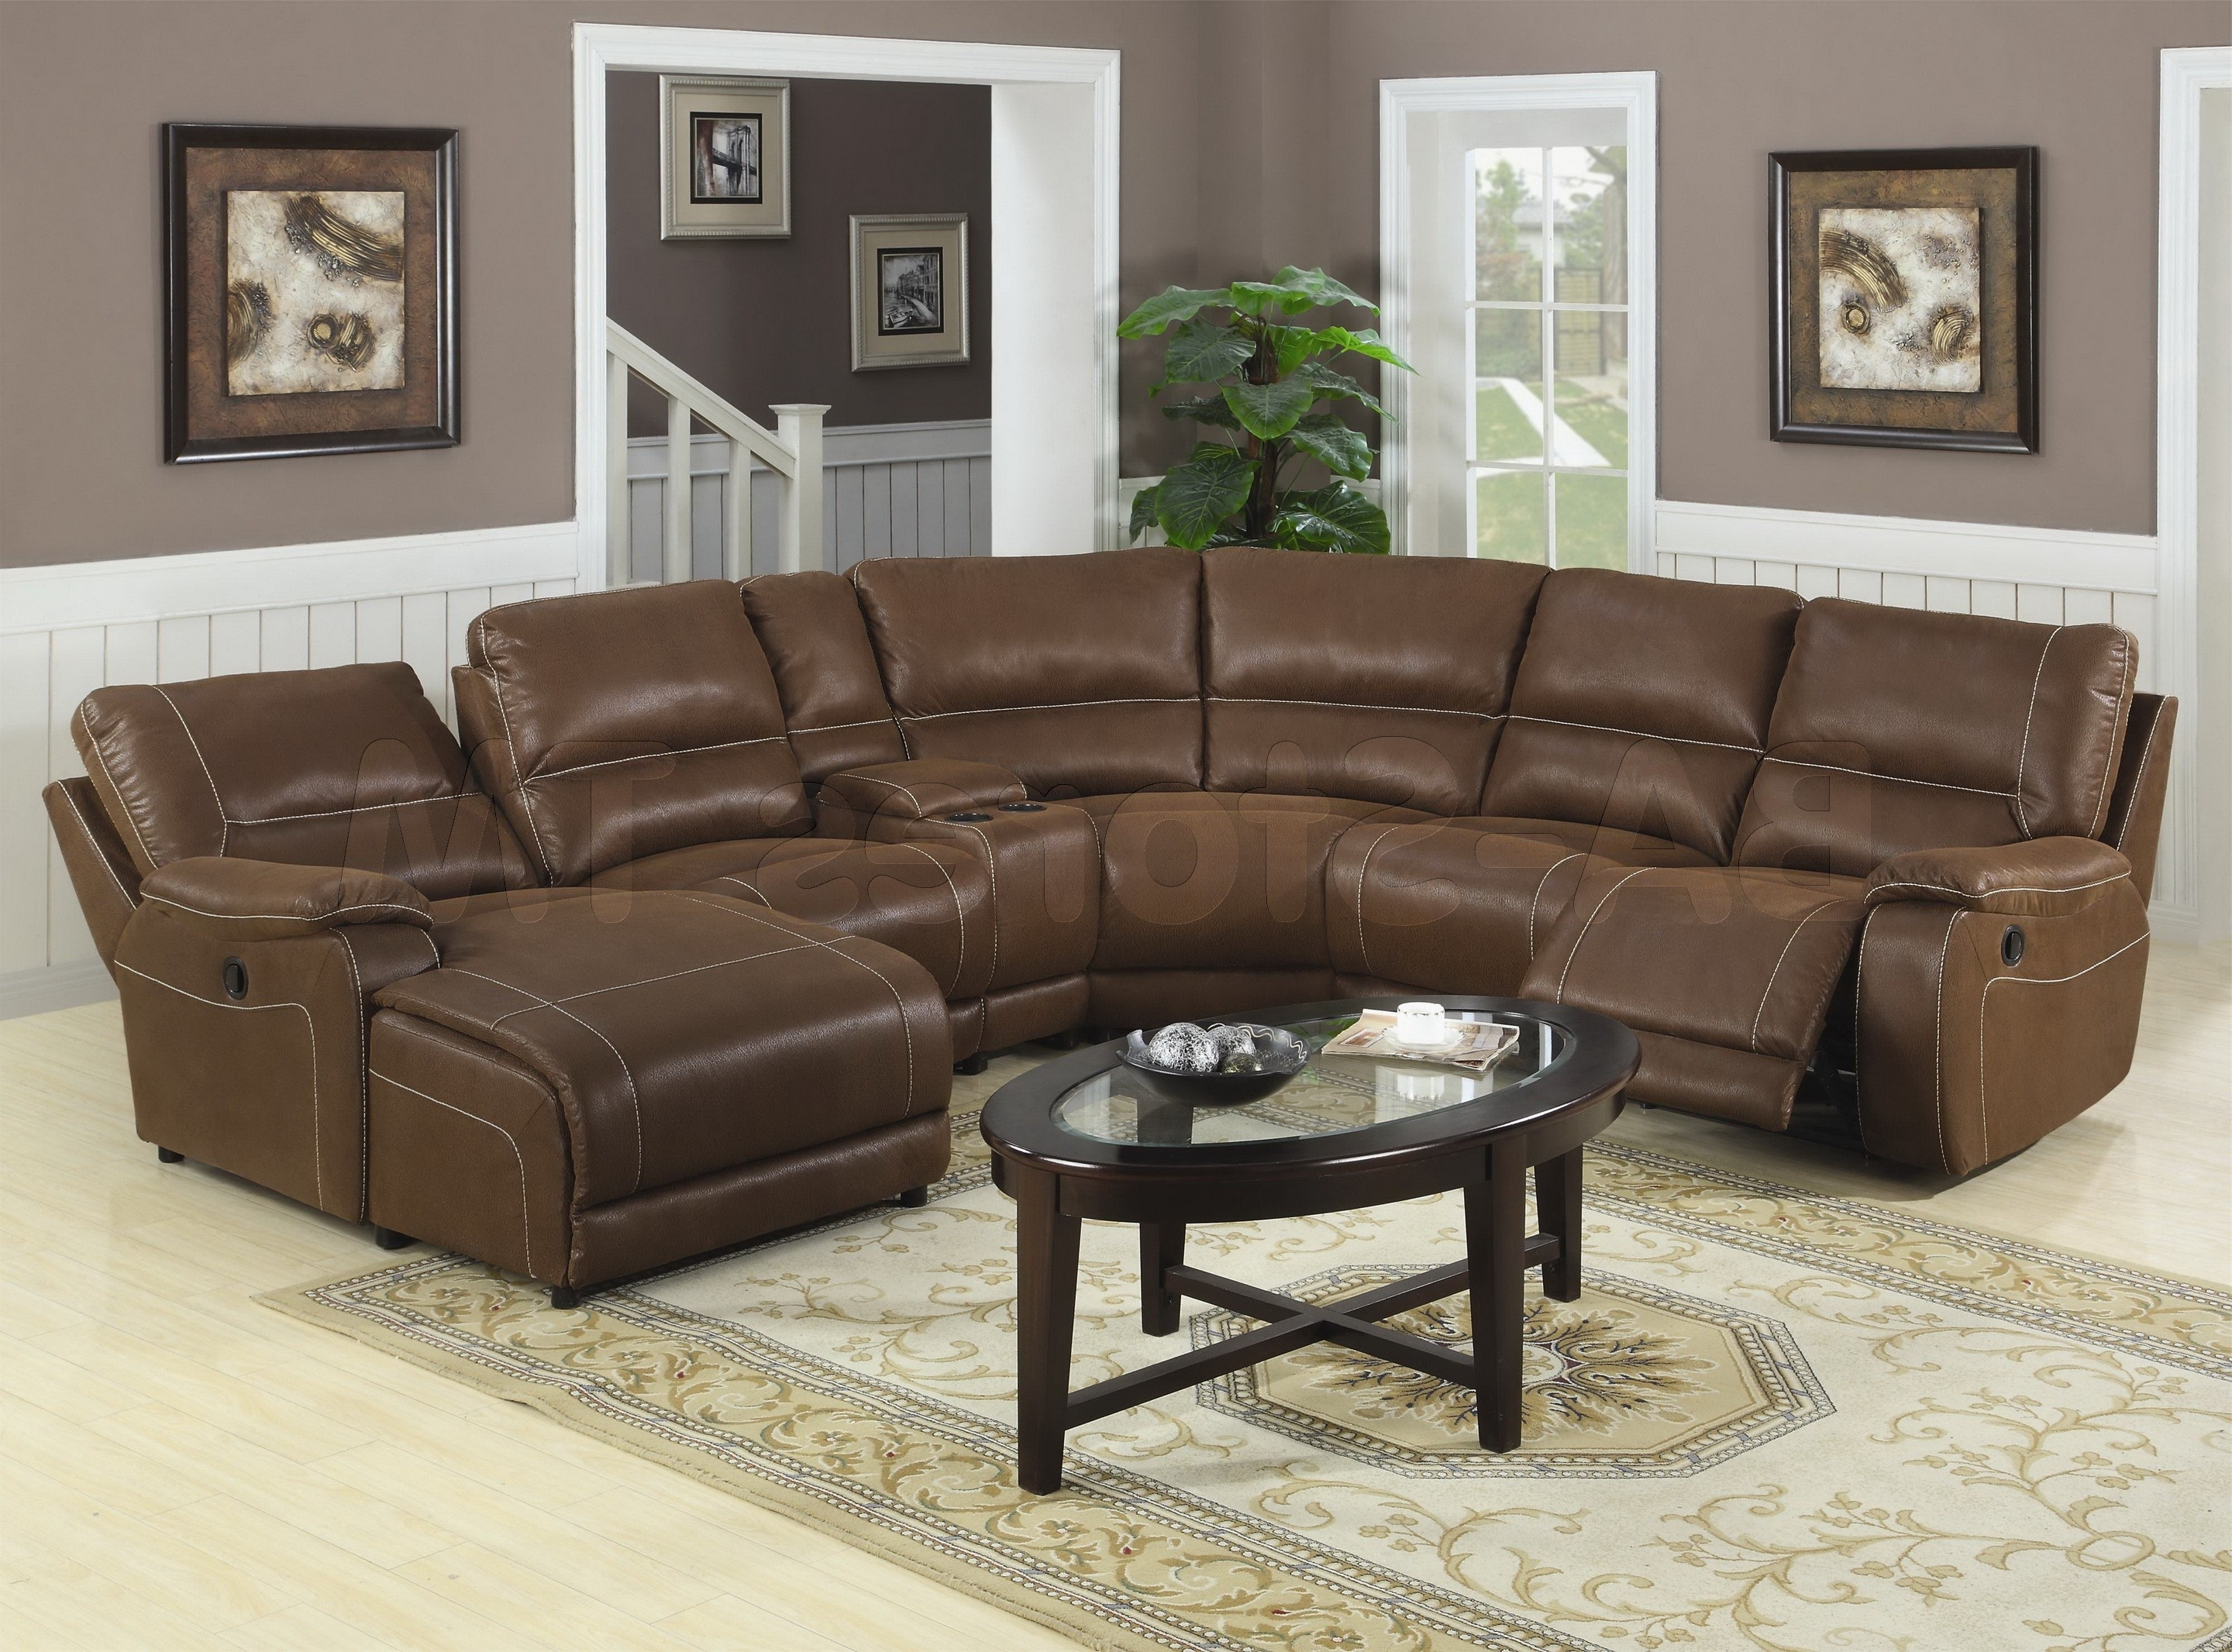 Fashionable Living Room : Living Room Furniture Sectional Modern Sofa Brown With Round Sectional Sofas (View 4 of 20)